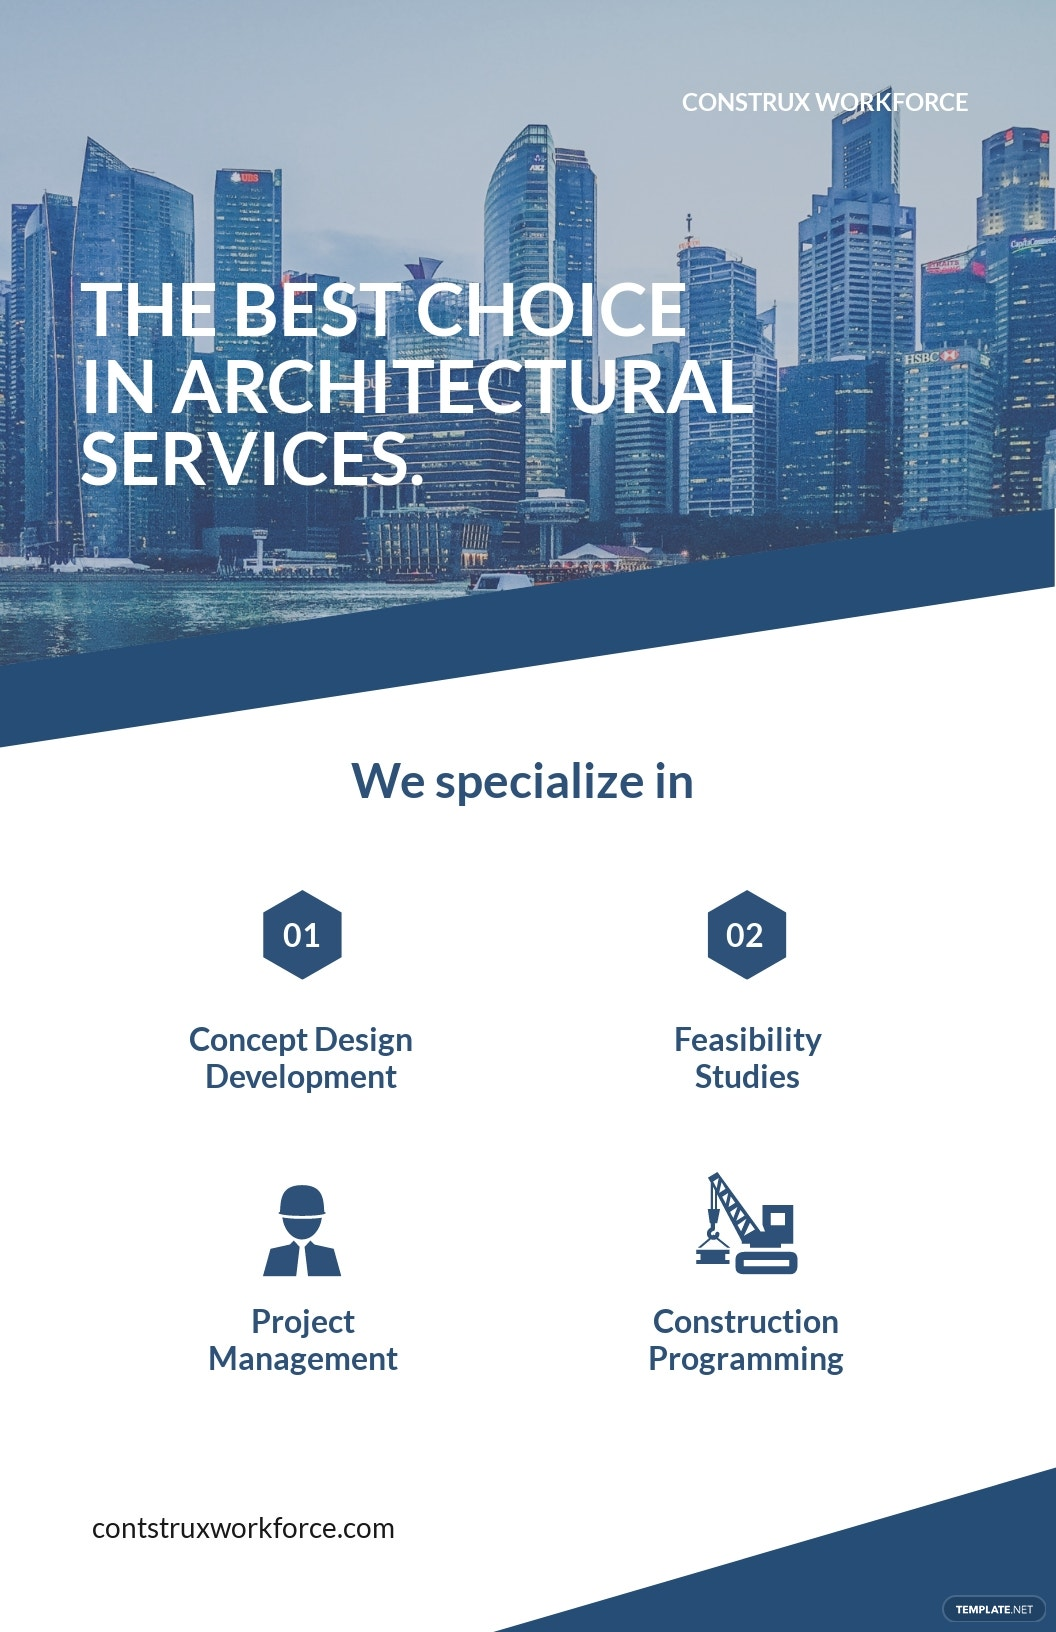 Free Architecture Poster Template.jpe